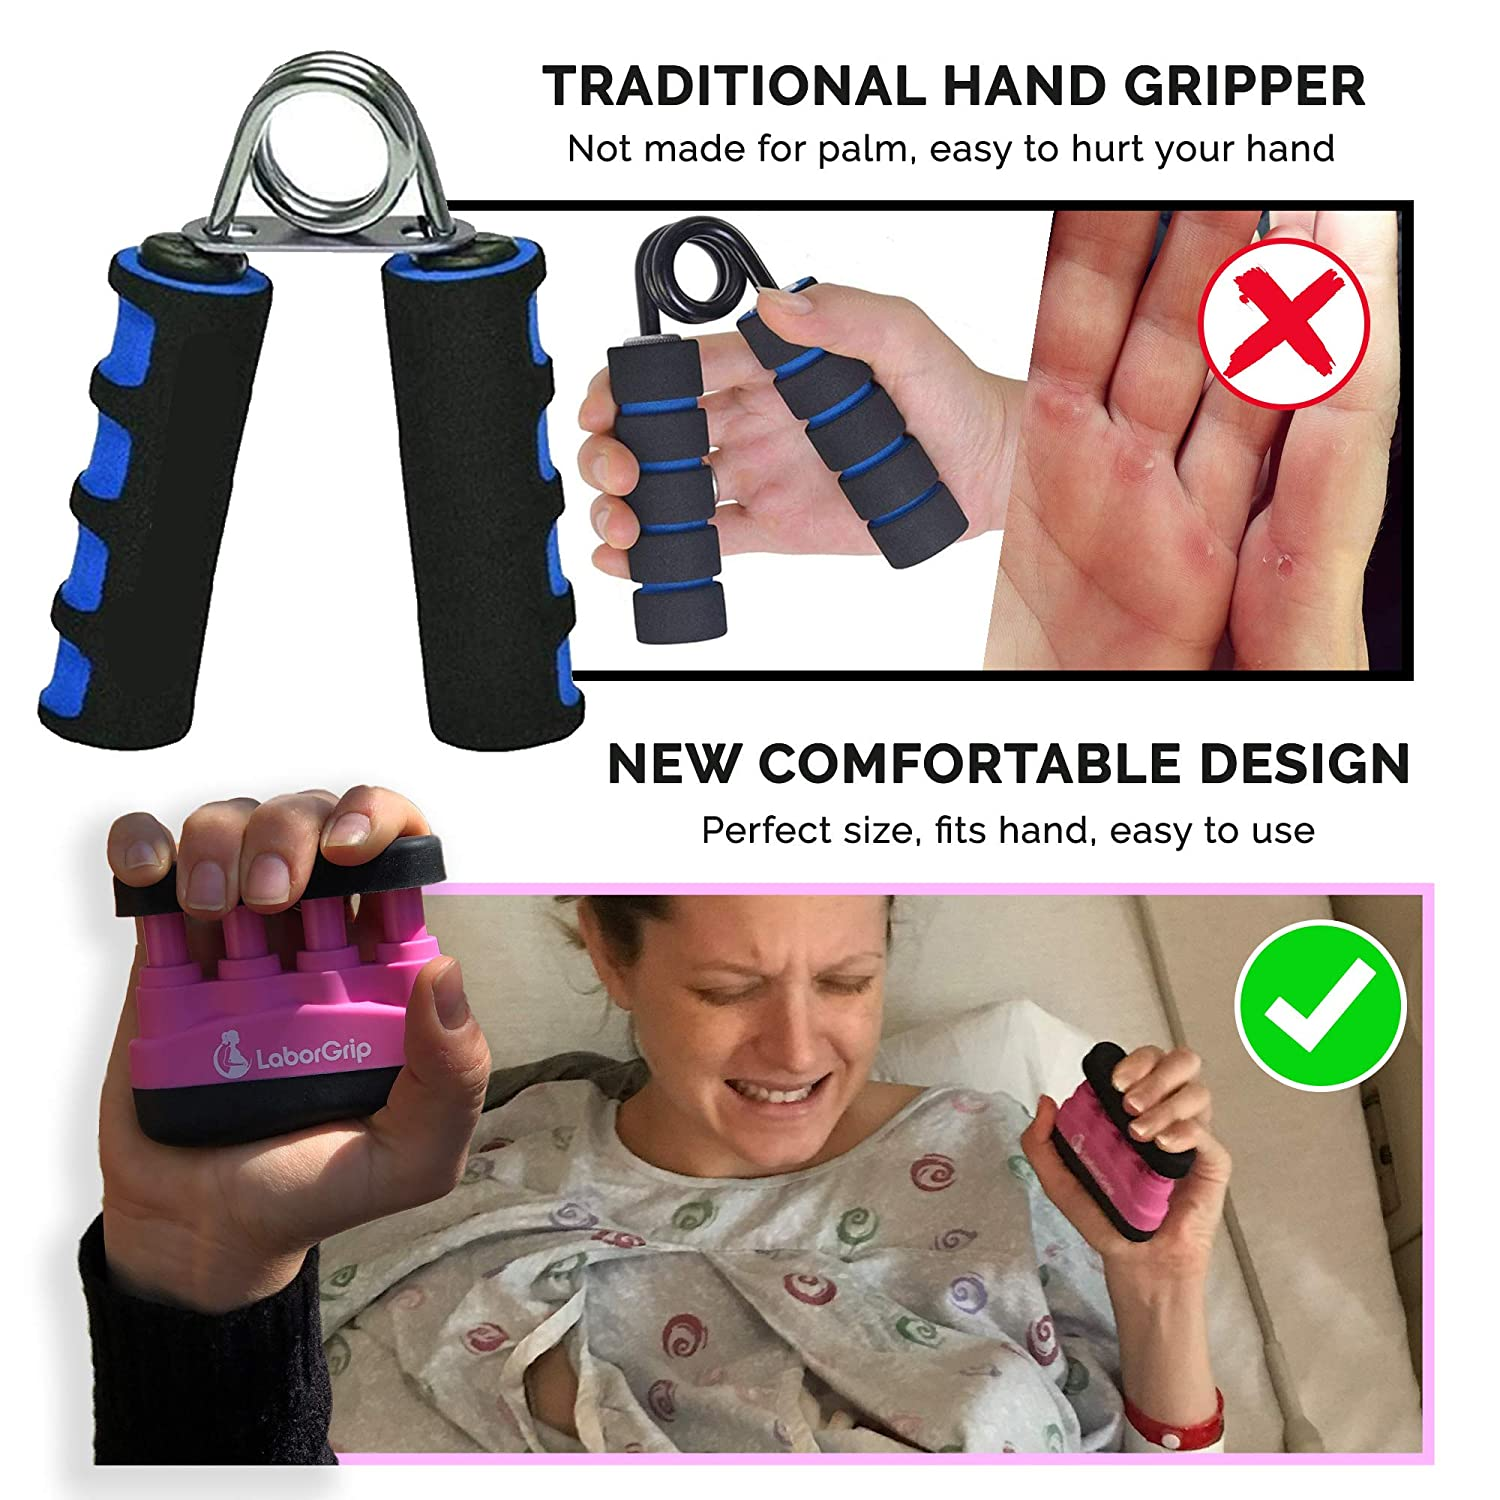 LaborGrip - Labor and Delivery Maternity Device - Pregnancy Gift for First Time Moms - Great Baby Shower Gift